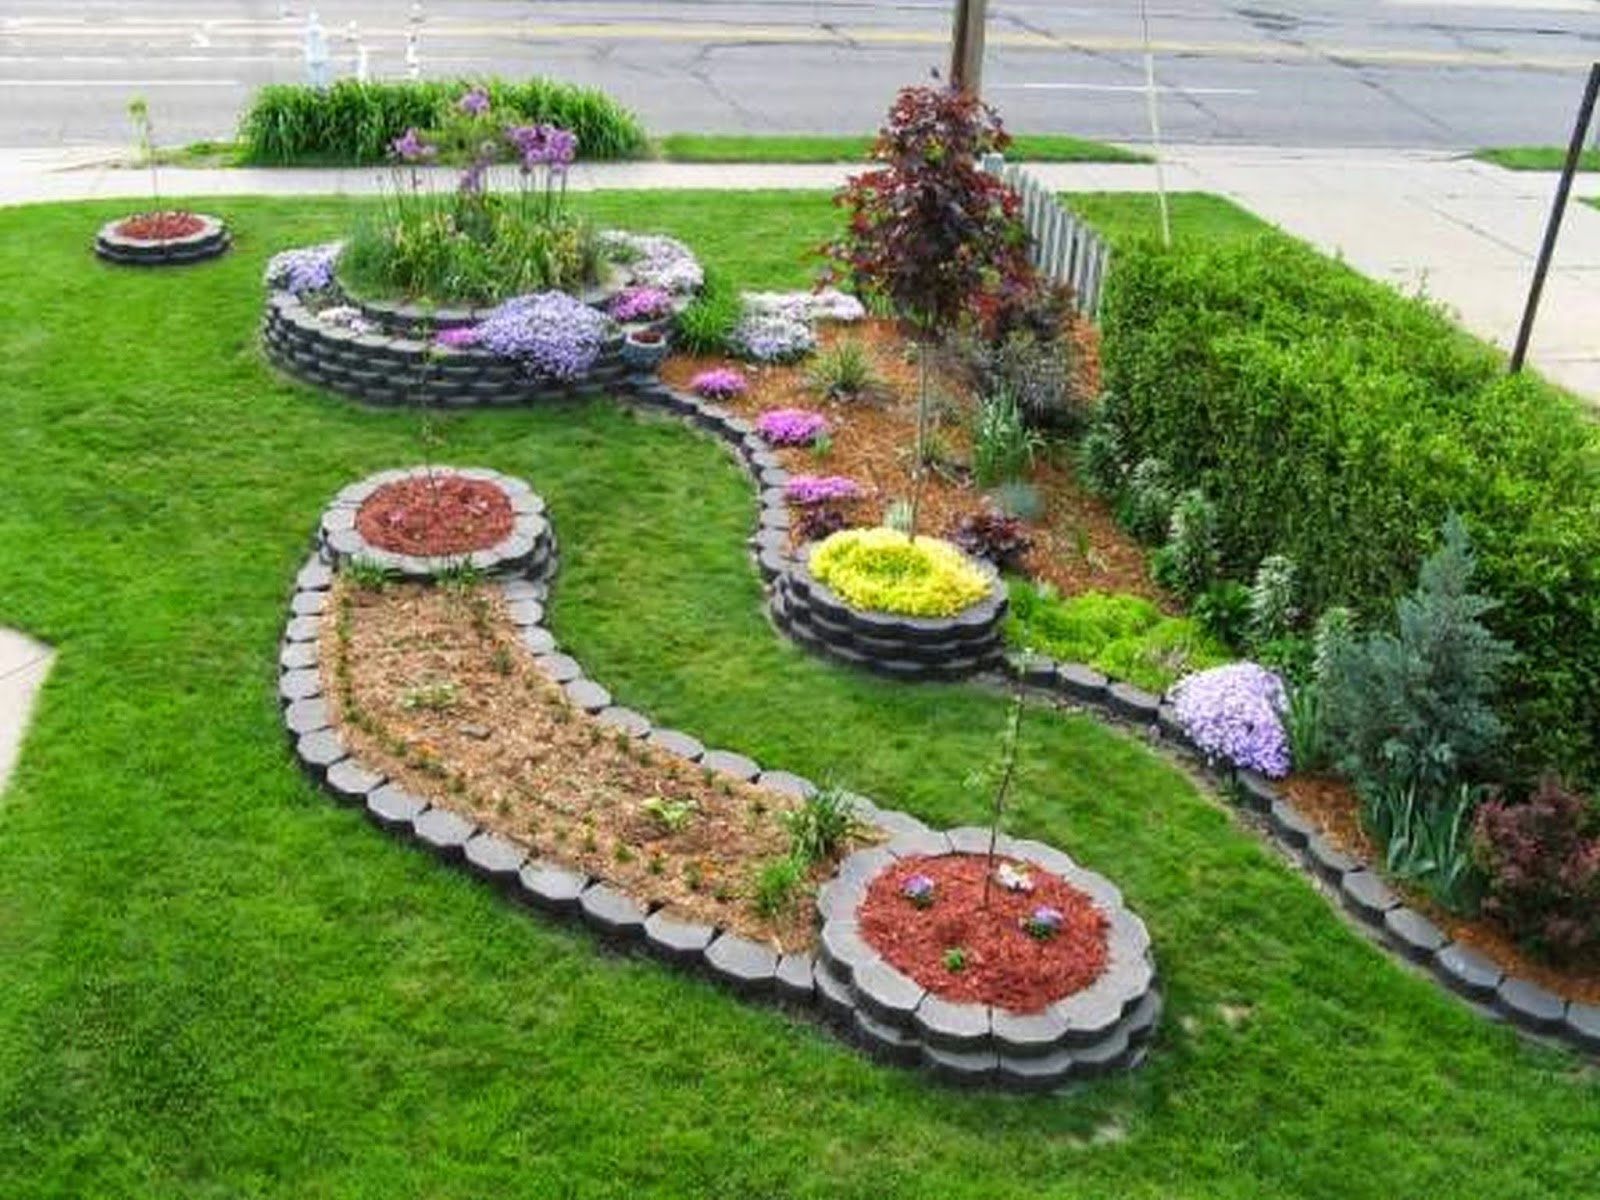 garden-and-patio-modern-landscaping-house-design-with-stone-raised-bed-for-herbs-flowers-and-vegetable-garden-plants-with-green-grass-garden-ideas-small-front-yard-landscape-ideas